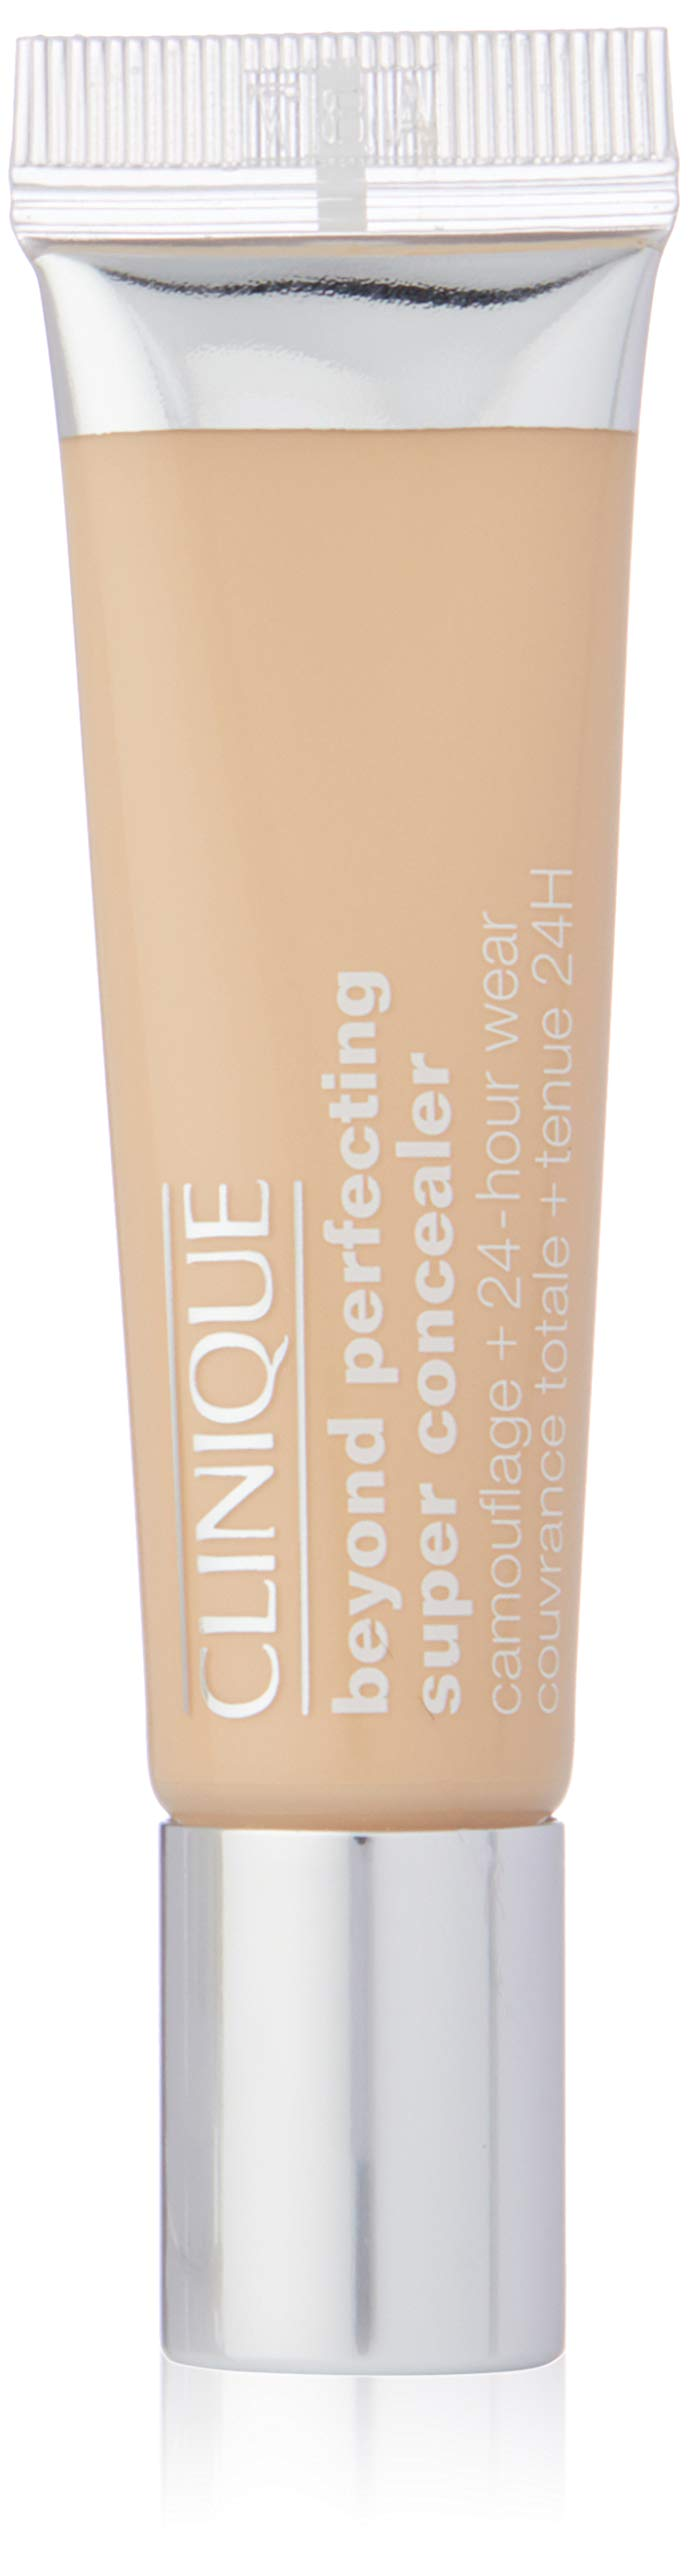 Clinique Beyond Perfecting Super Concealer Camouflage Pus 24-Hour Wear, Very Fair, 0.28 Ounce